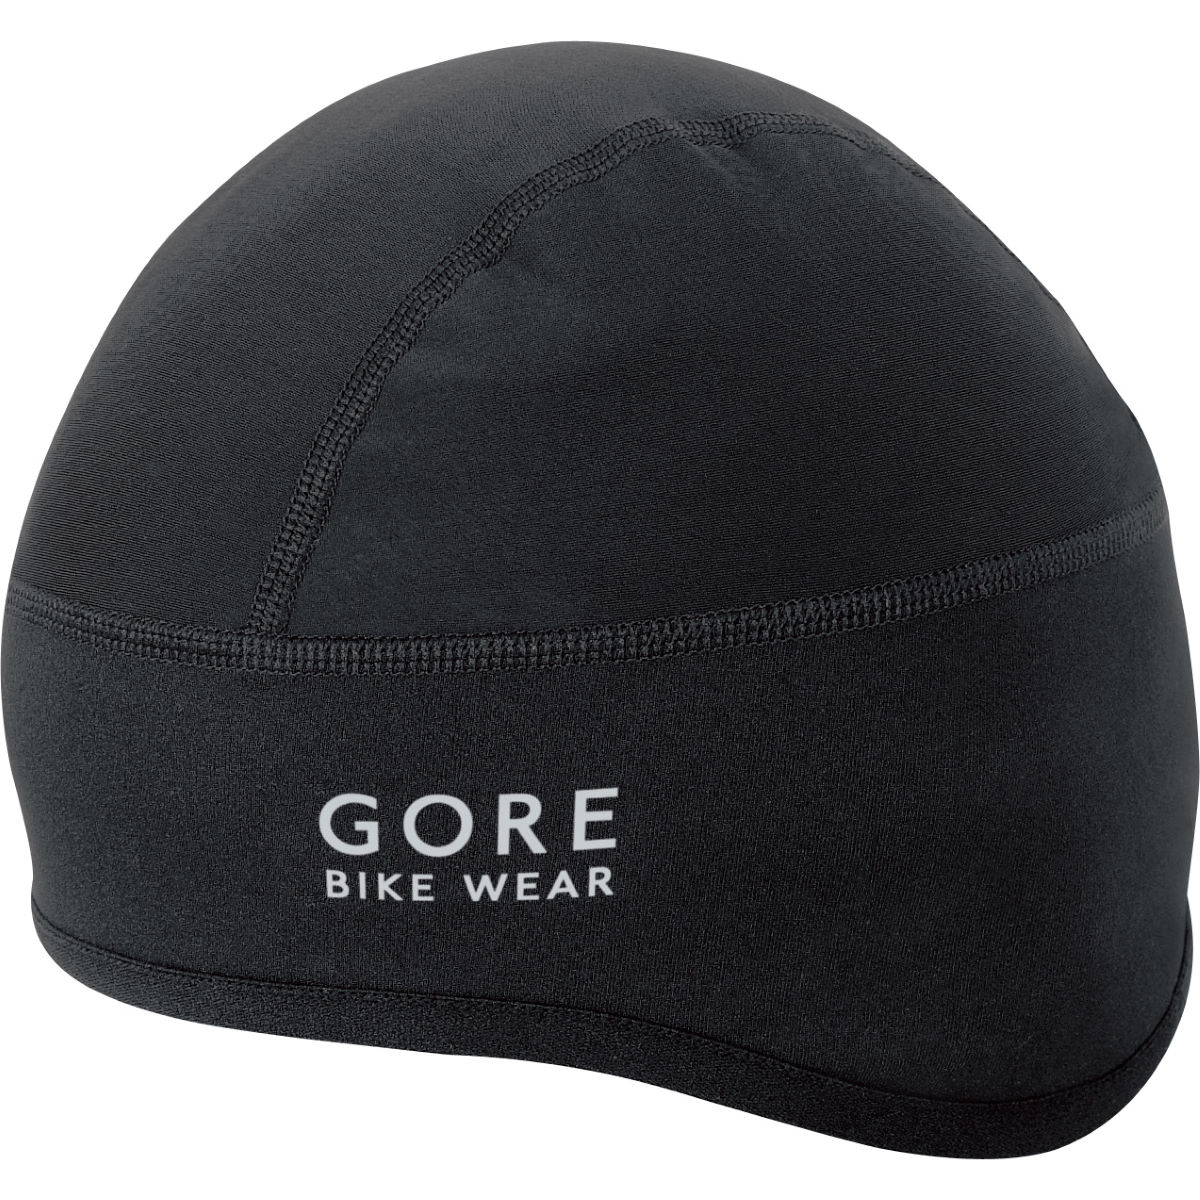 Gore Bike Wear Universal Softshell Helmet Cap